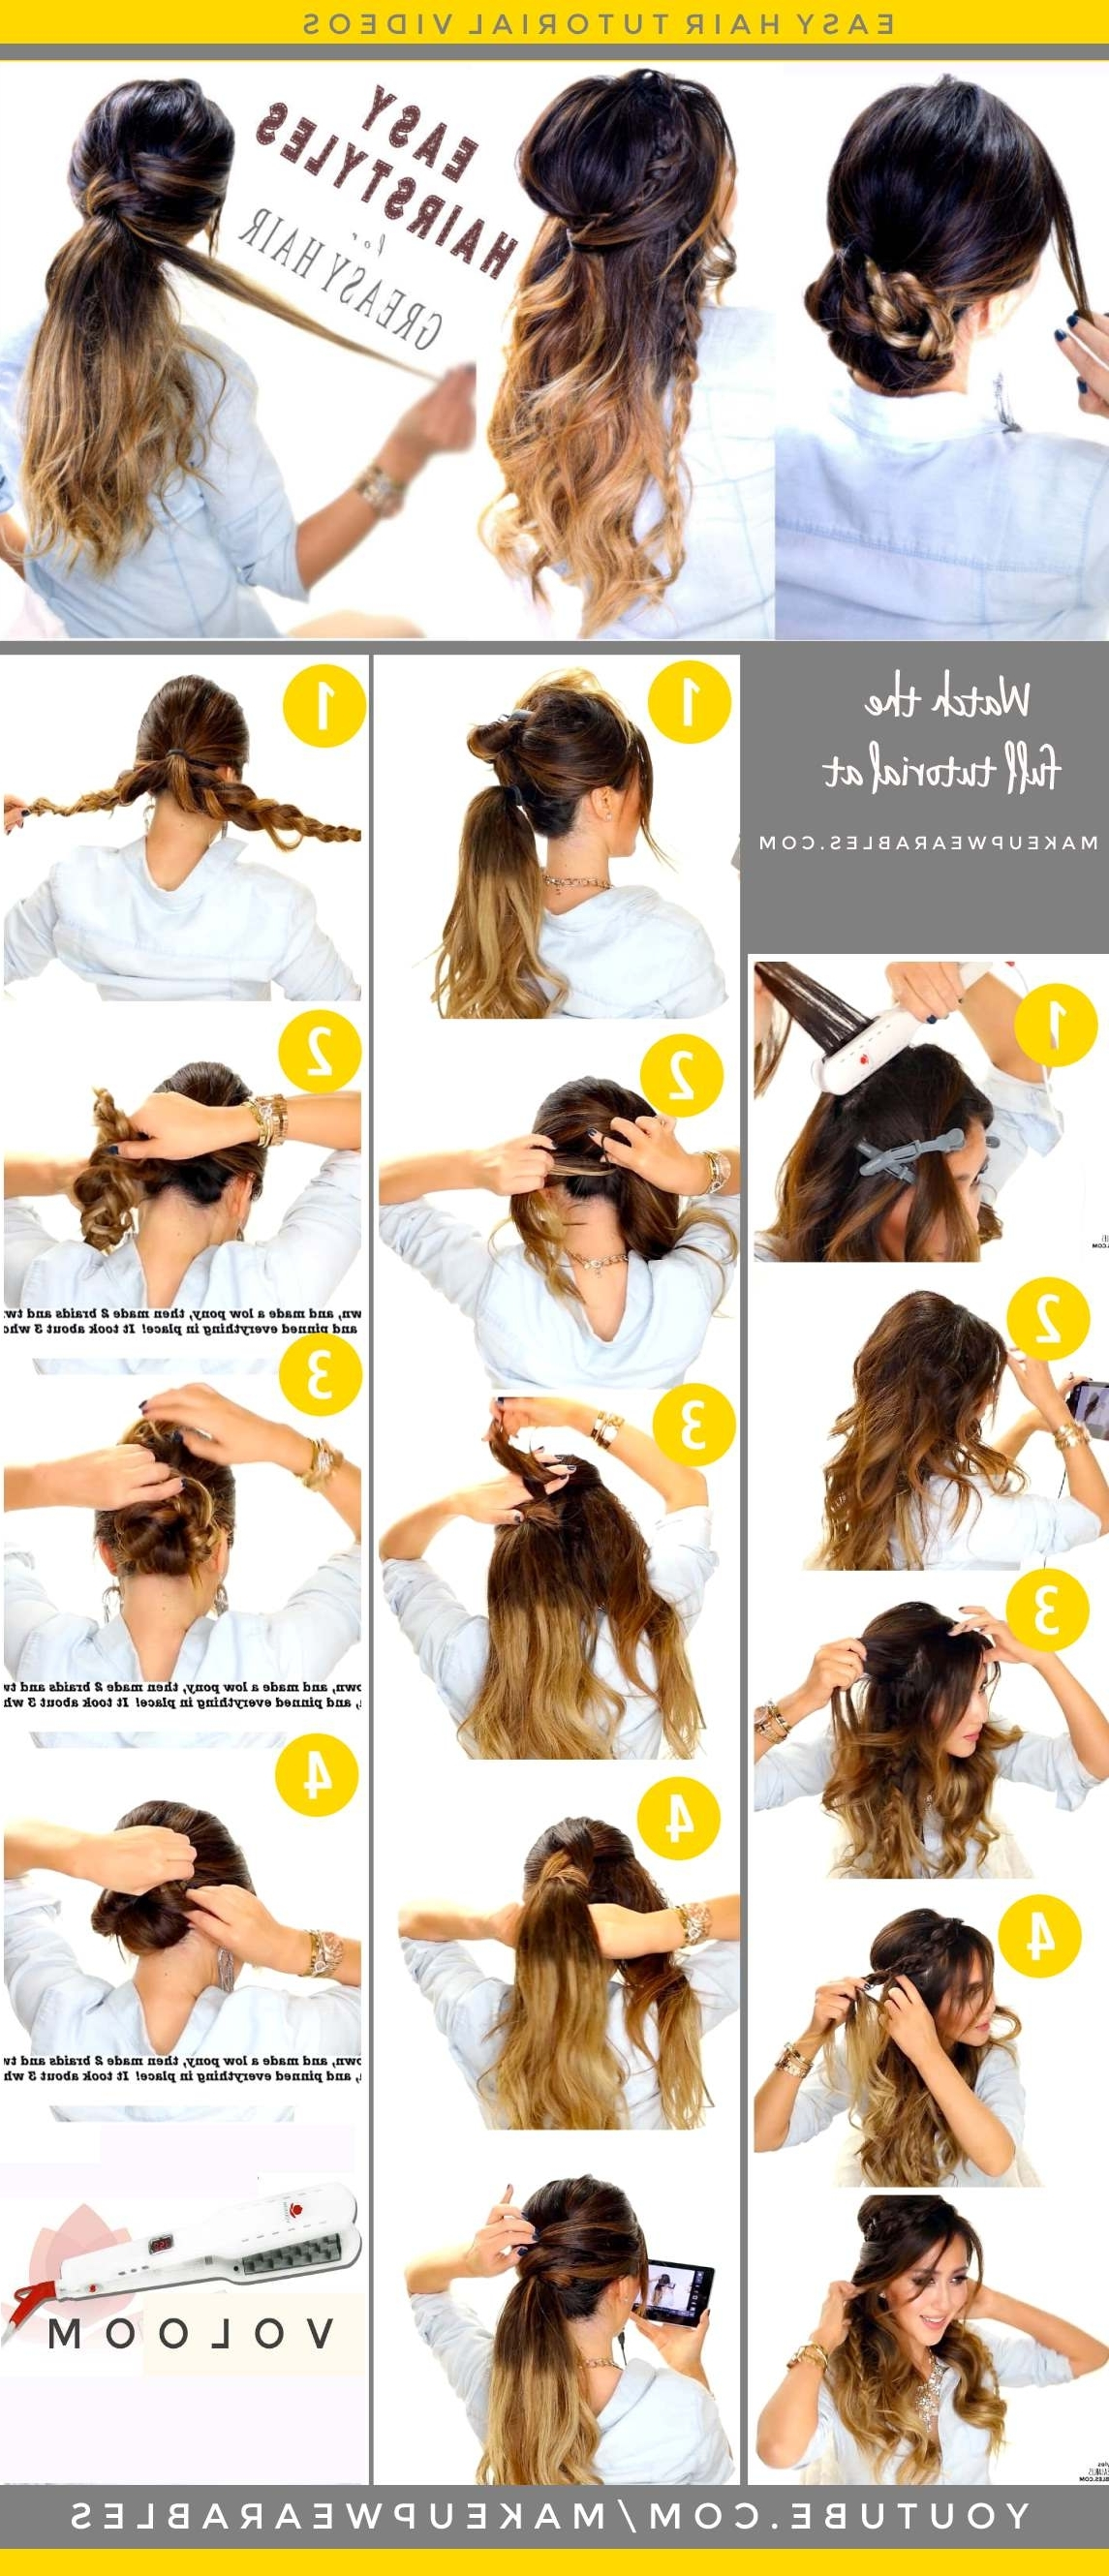 4 Easy Hairstyles For Greasy Hair | Cute Everyday Styles Pertaining To Cute And Easy Updo Hairstyles (View 10 of 15)